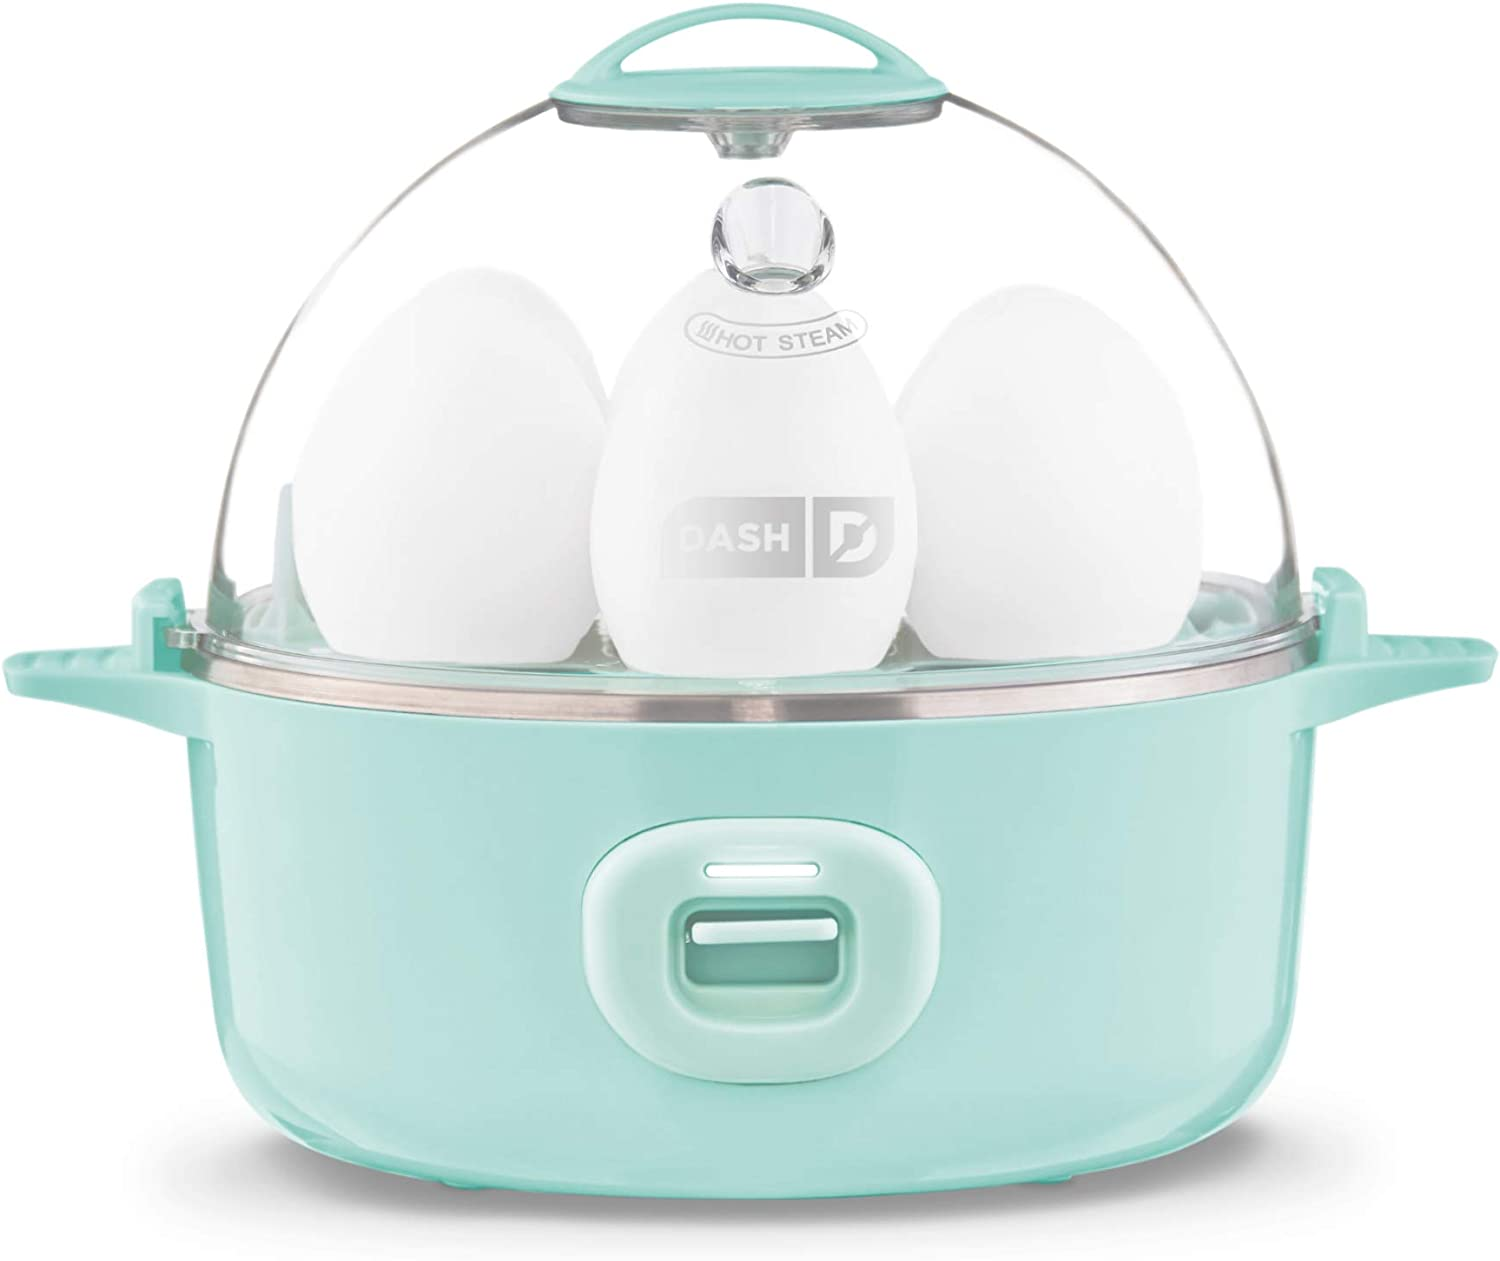 DASH Express Electric Egg Cooker, 7, Aqua